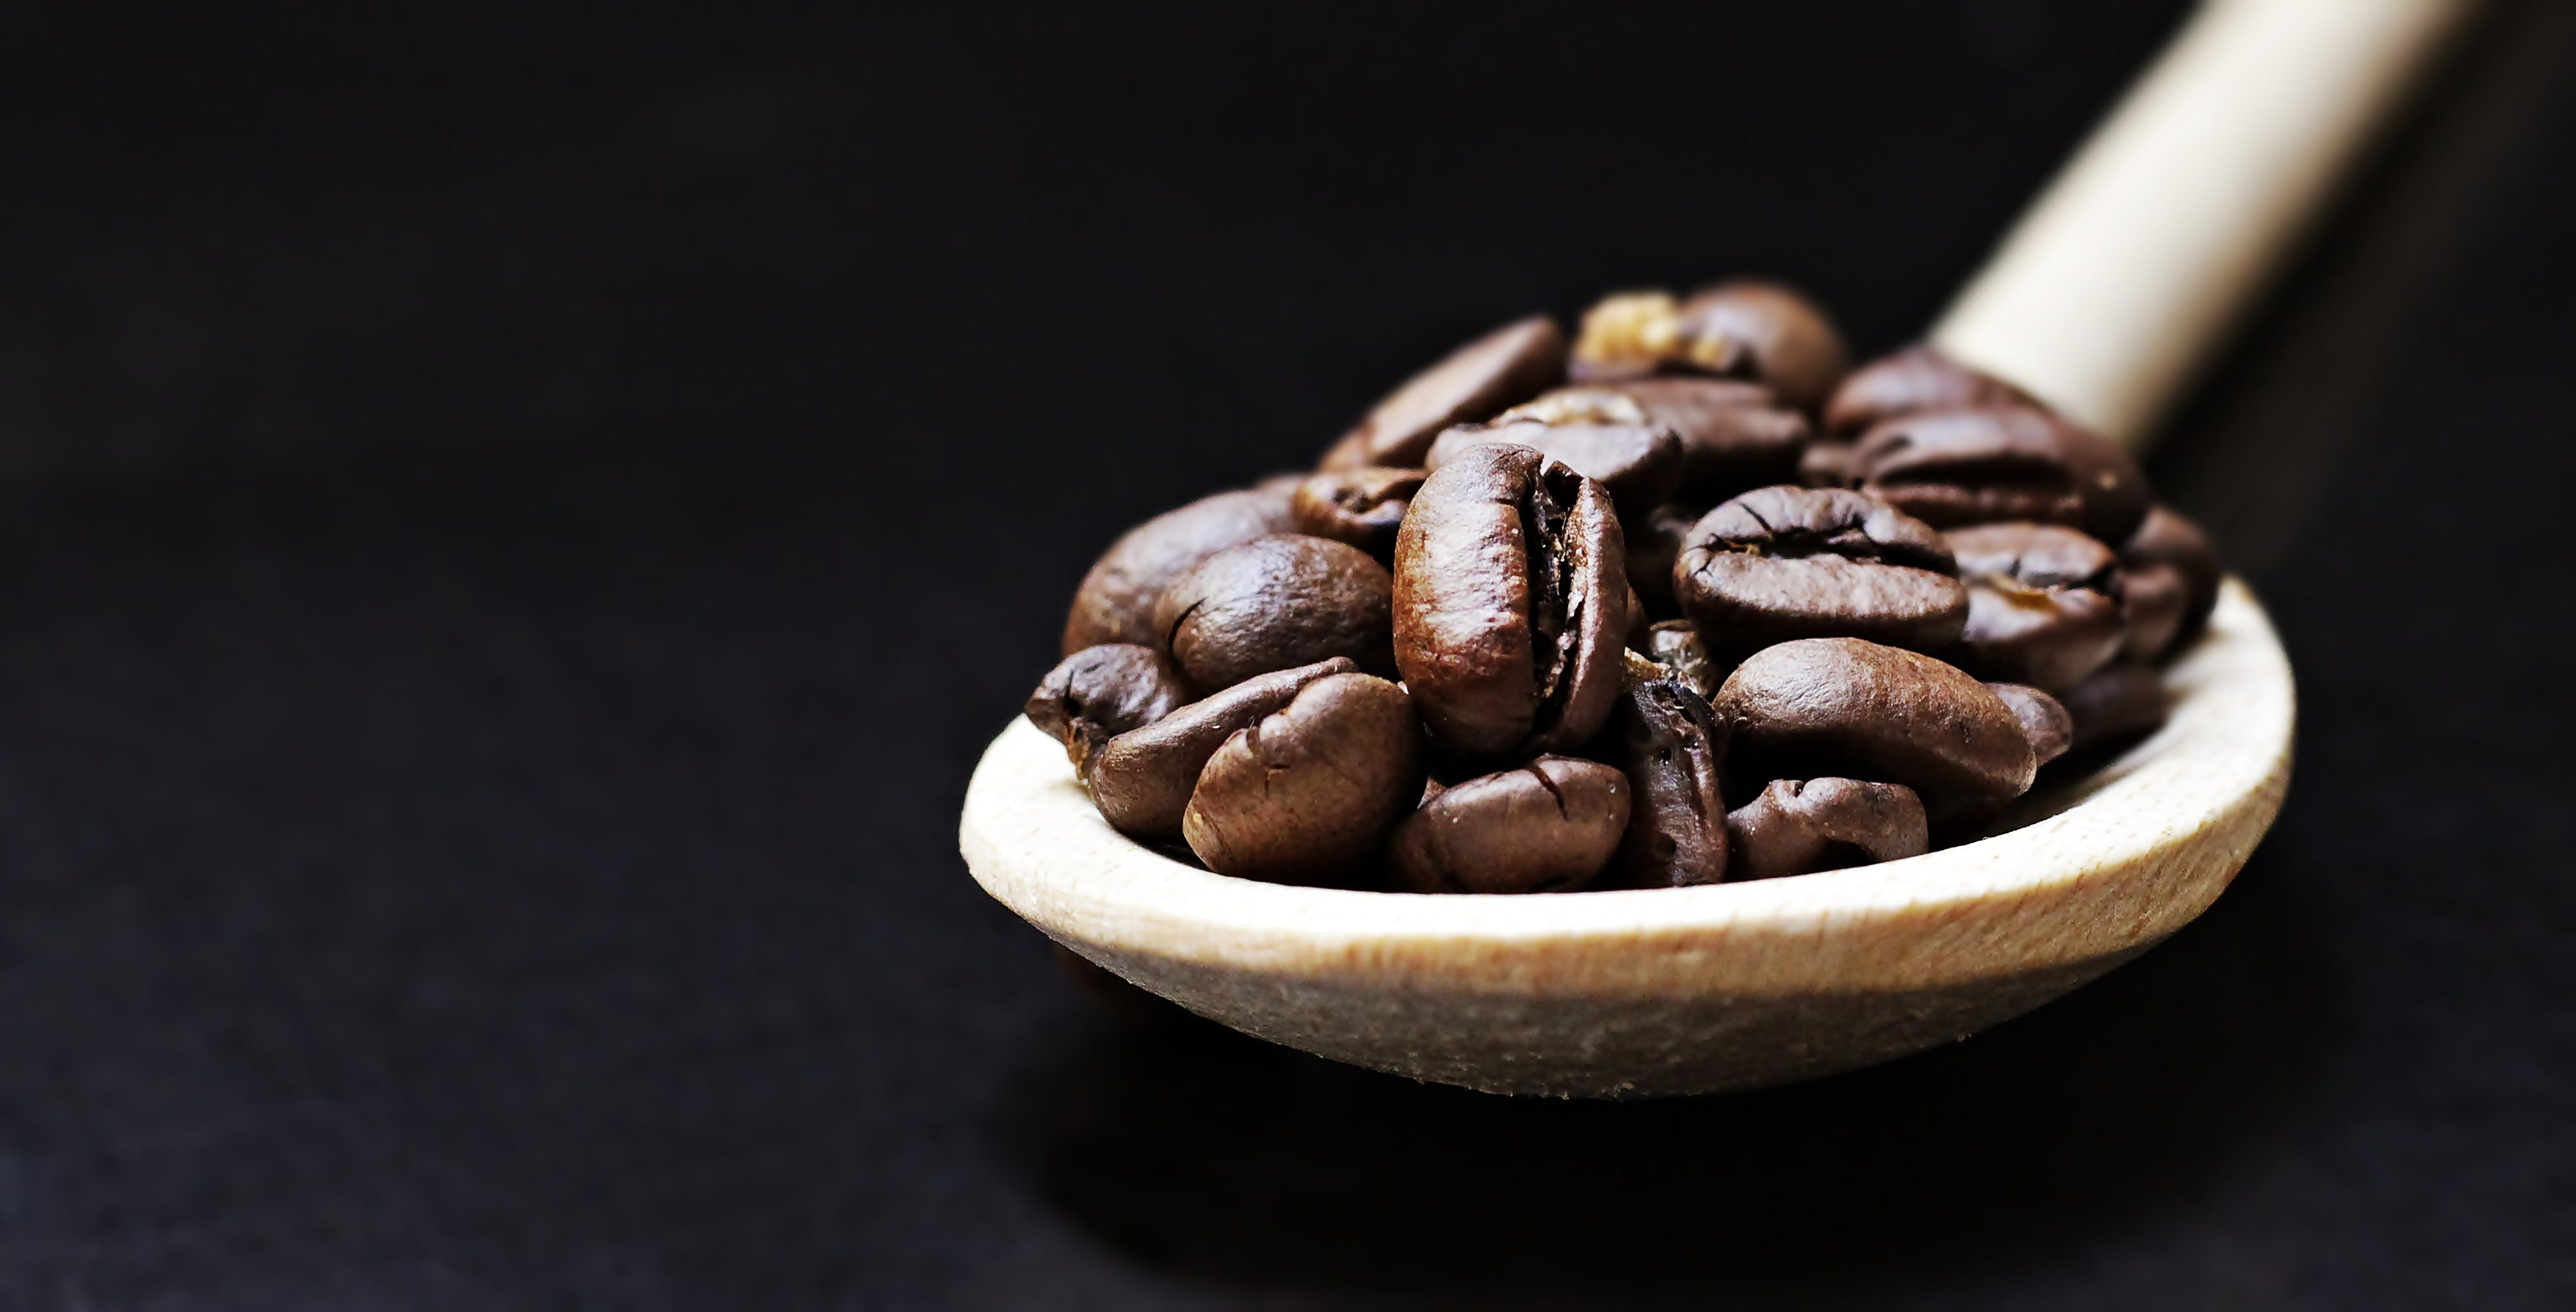 Free stock photo of beans, caffeine, coffee, close-up